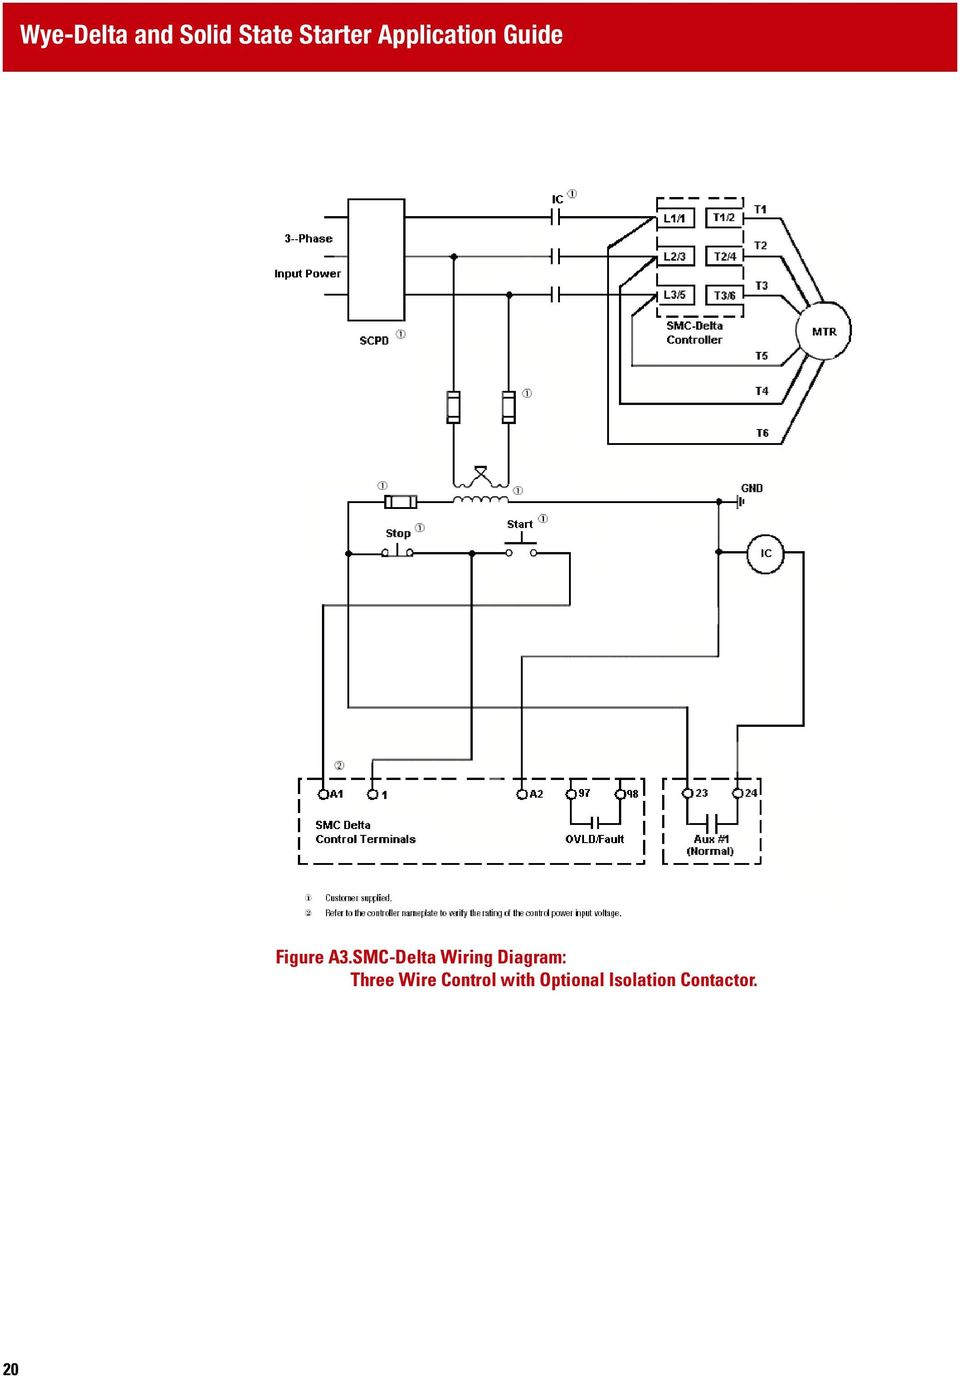 Wye Delta Wiring Diagram Breaker Schematics Diagrams Schematic Y And Solid State Starter Application Guide Pdf Open Transformer Connection